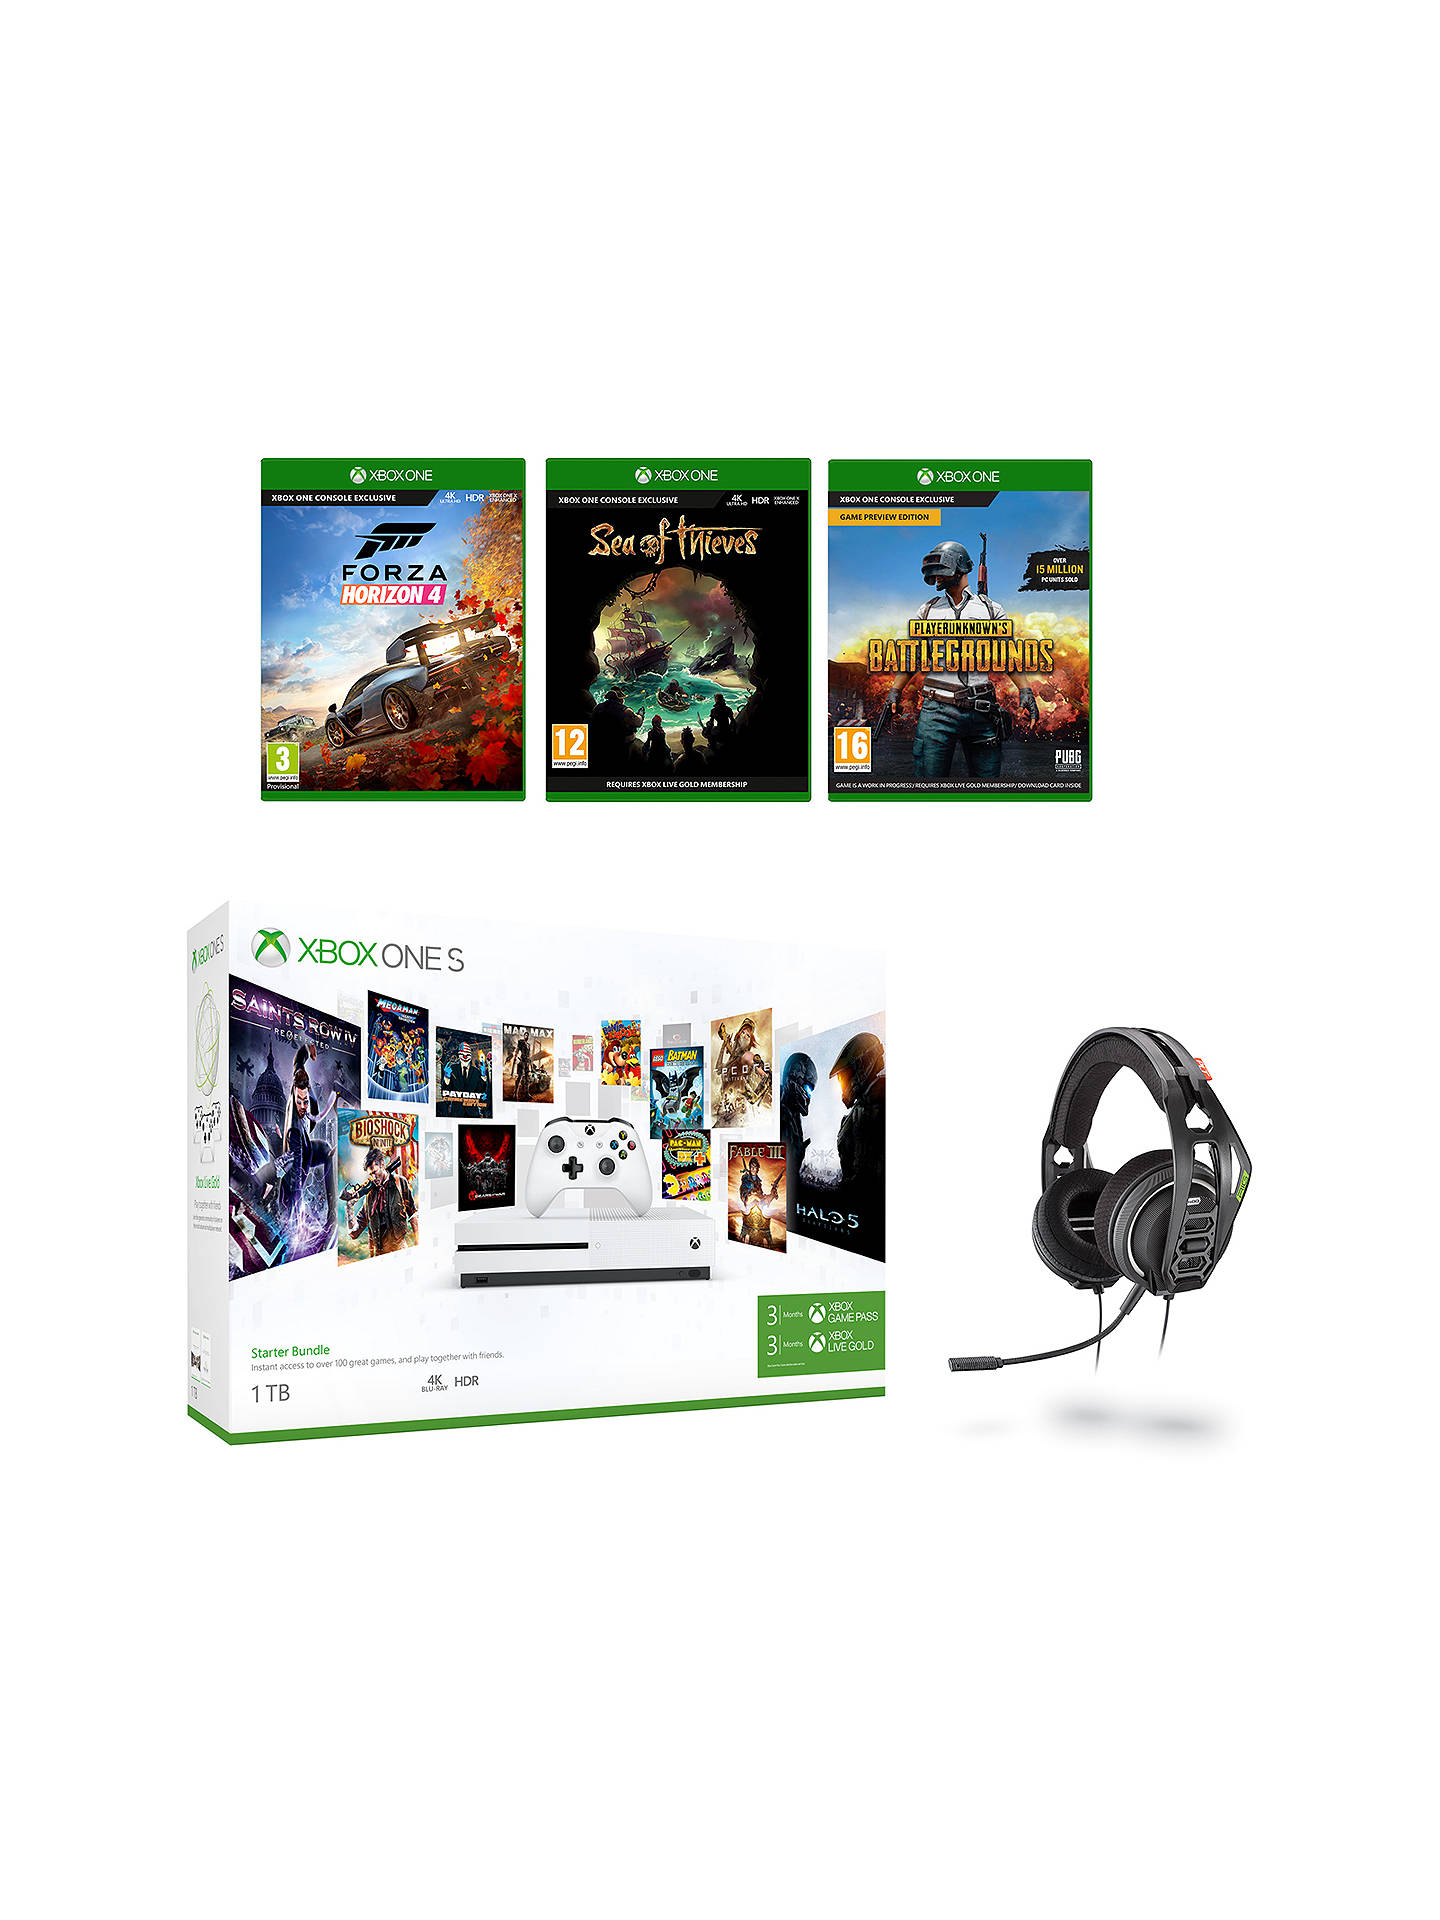 6384e4a561b Buy Microsoft Xbox One S Console, 1TB, with Wireless Controller and  PlayerUnknown's Battlegrounds,